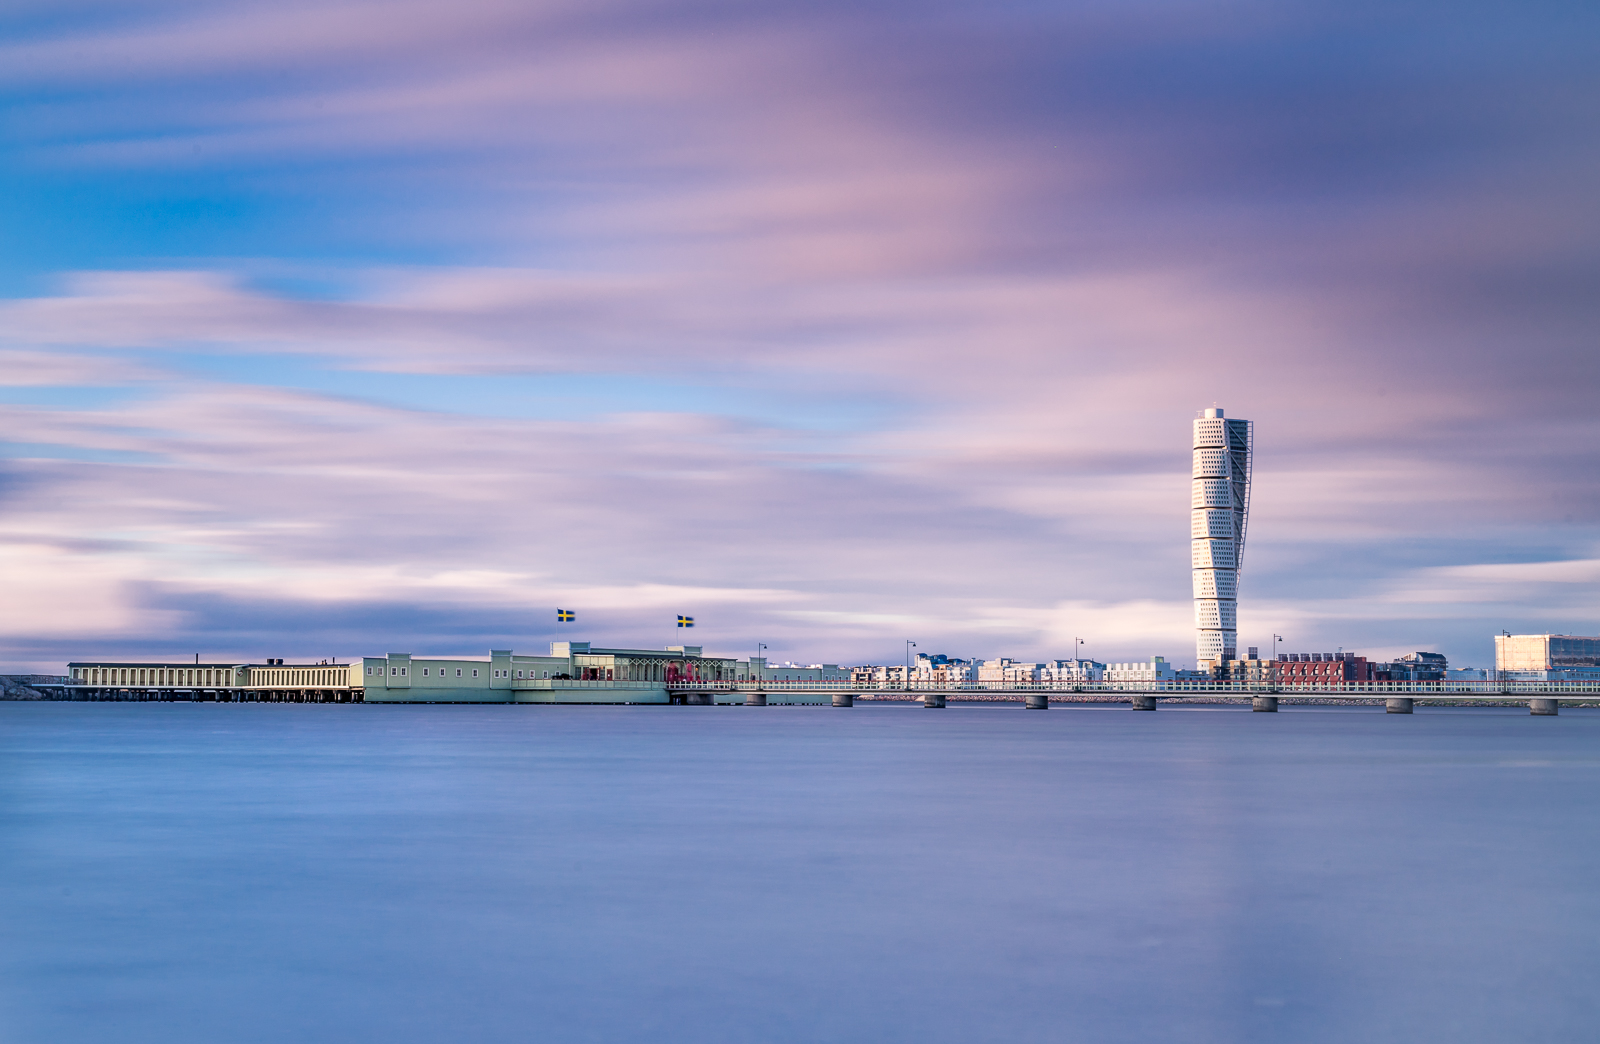 Kallbadhuset and Turning Torso in the same photo. Sweet !!